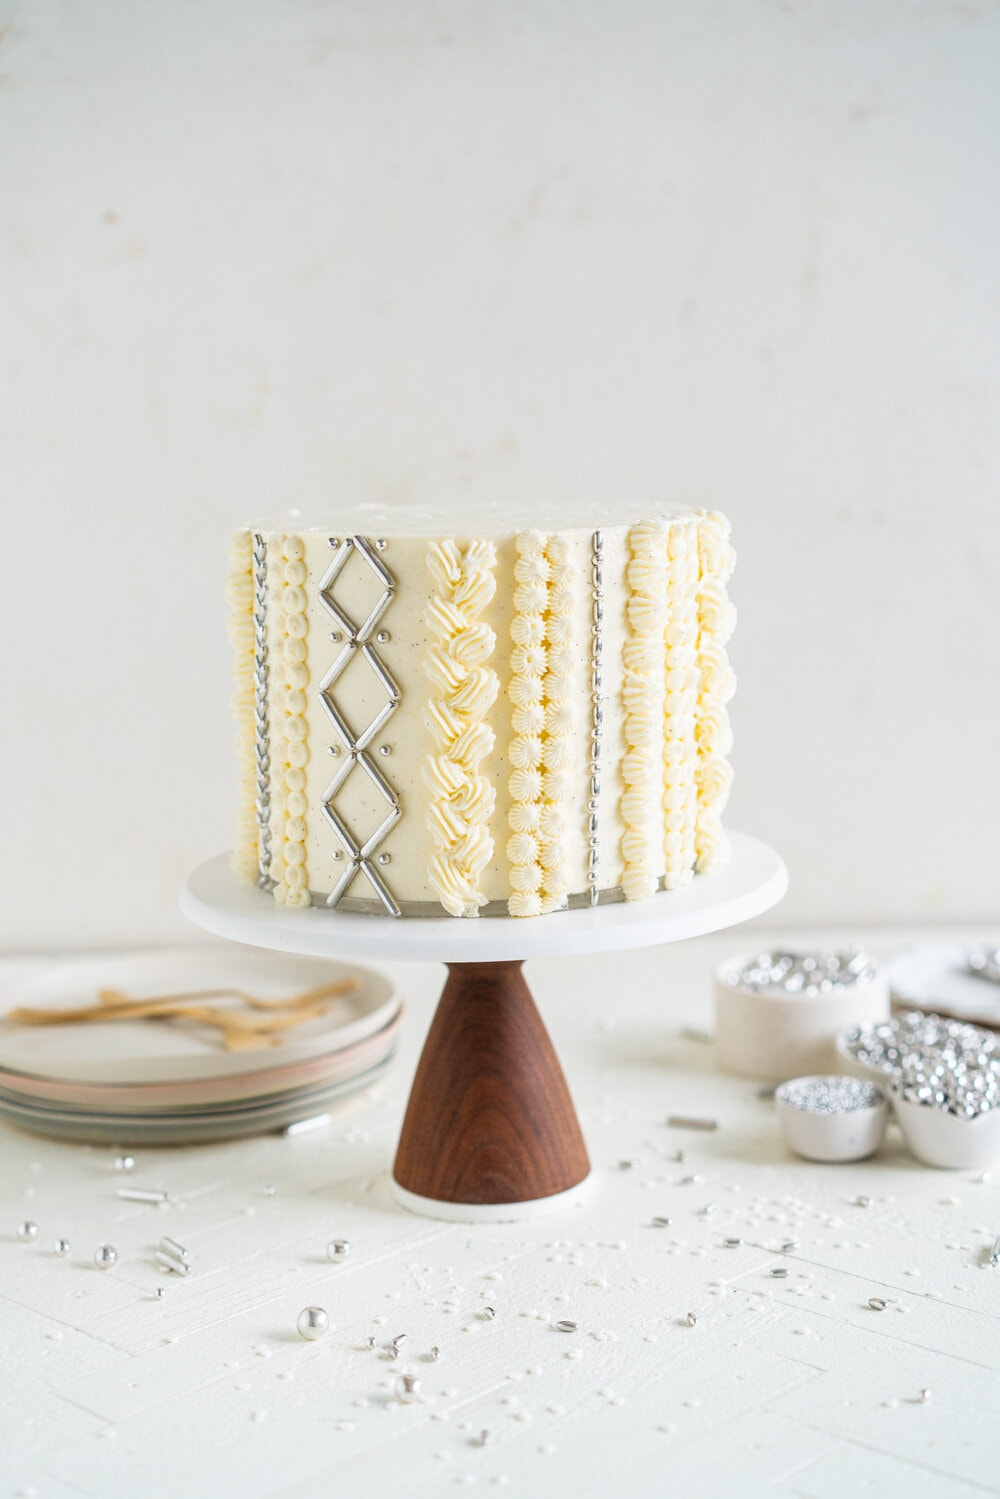 Gingerbread sweater cake - a one bowl soft gingerbread layer cake is stacked with a vanilla bean swiss meringue buttercream, then finished with some sweater inspired piping and silver sprinkles.